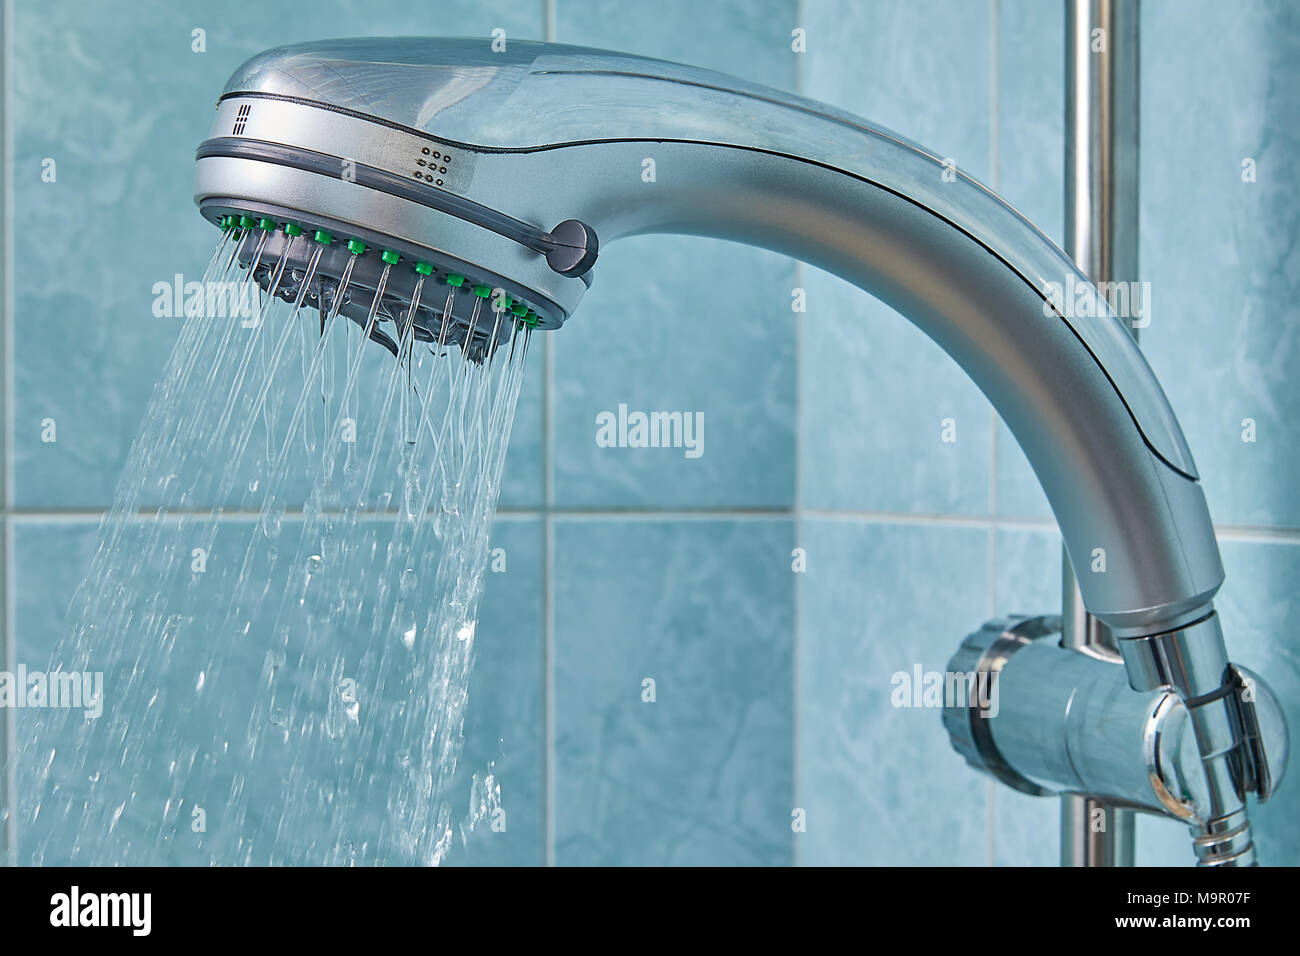 Water runs from the new shower head, which is fixed in the holder in ...